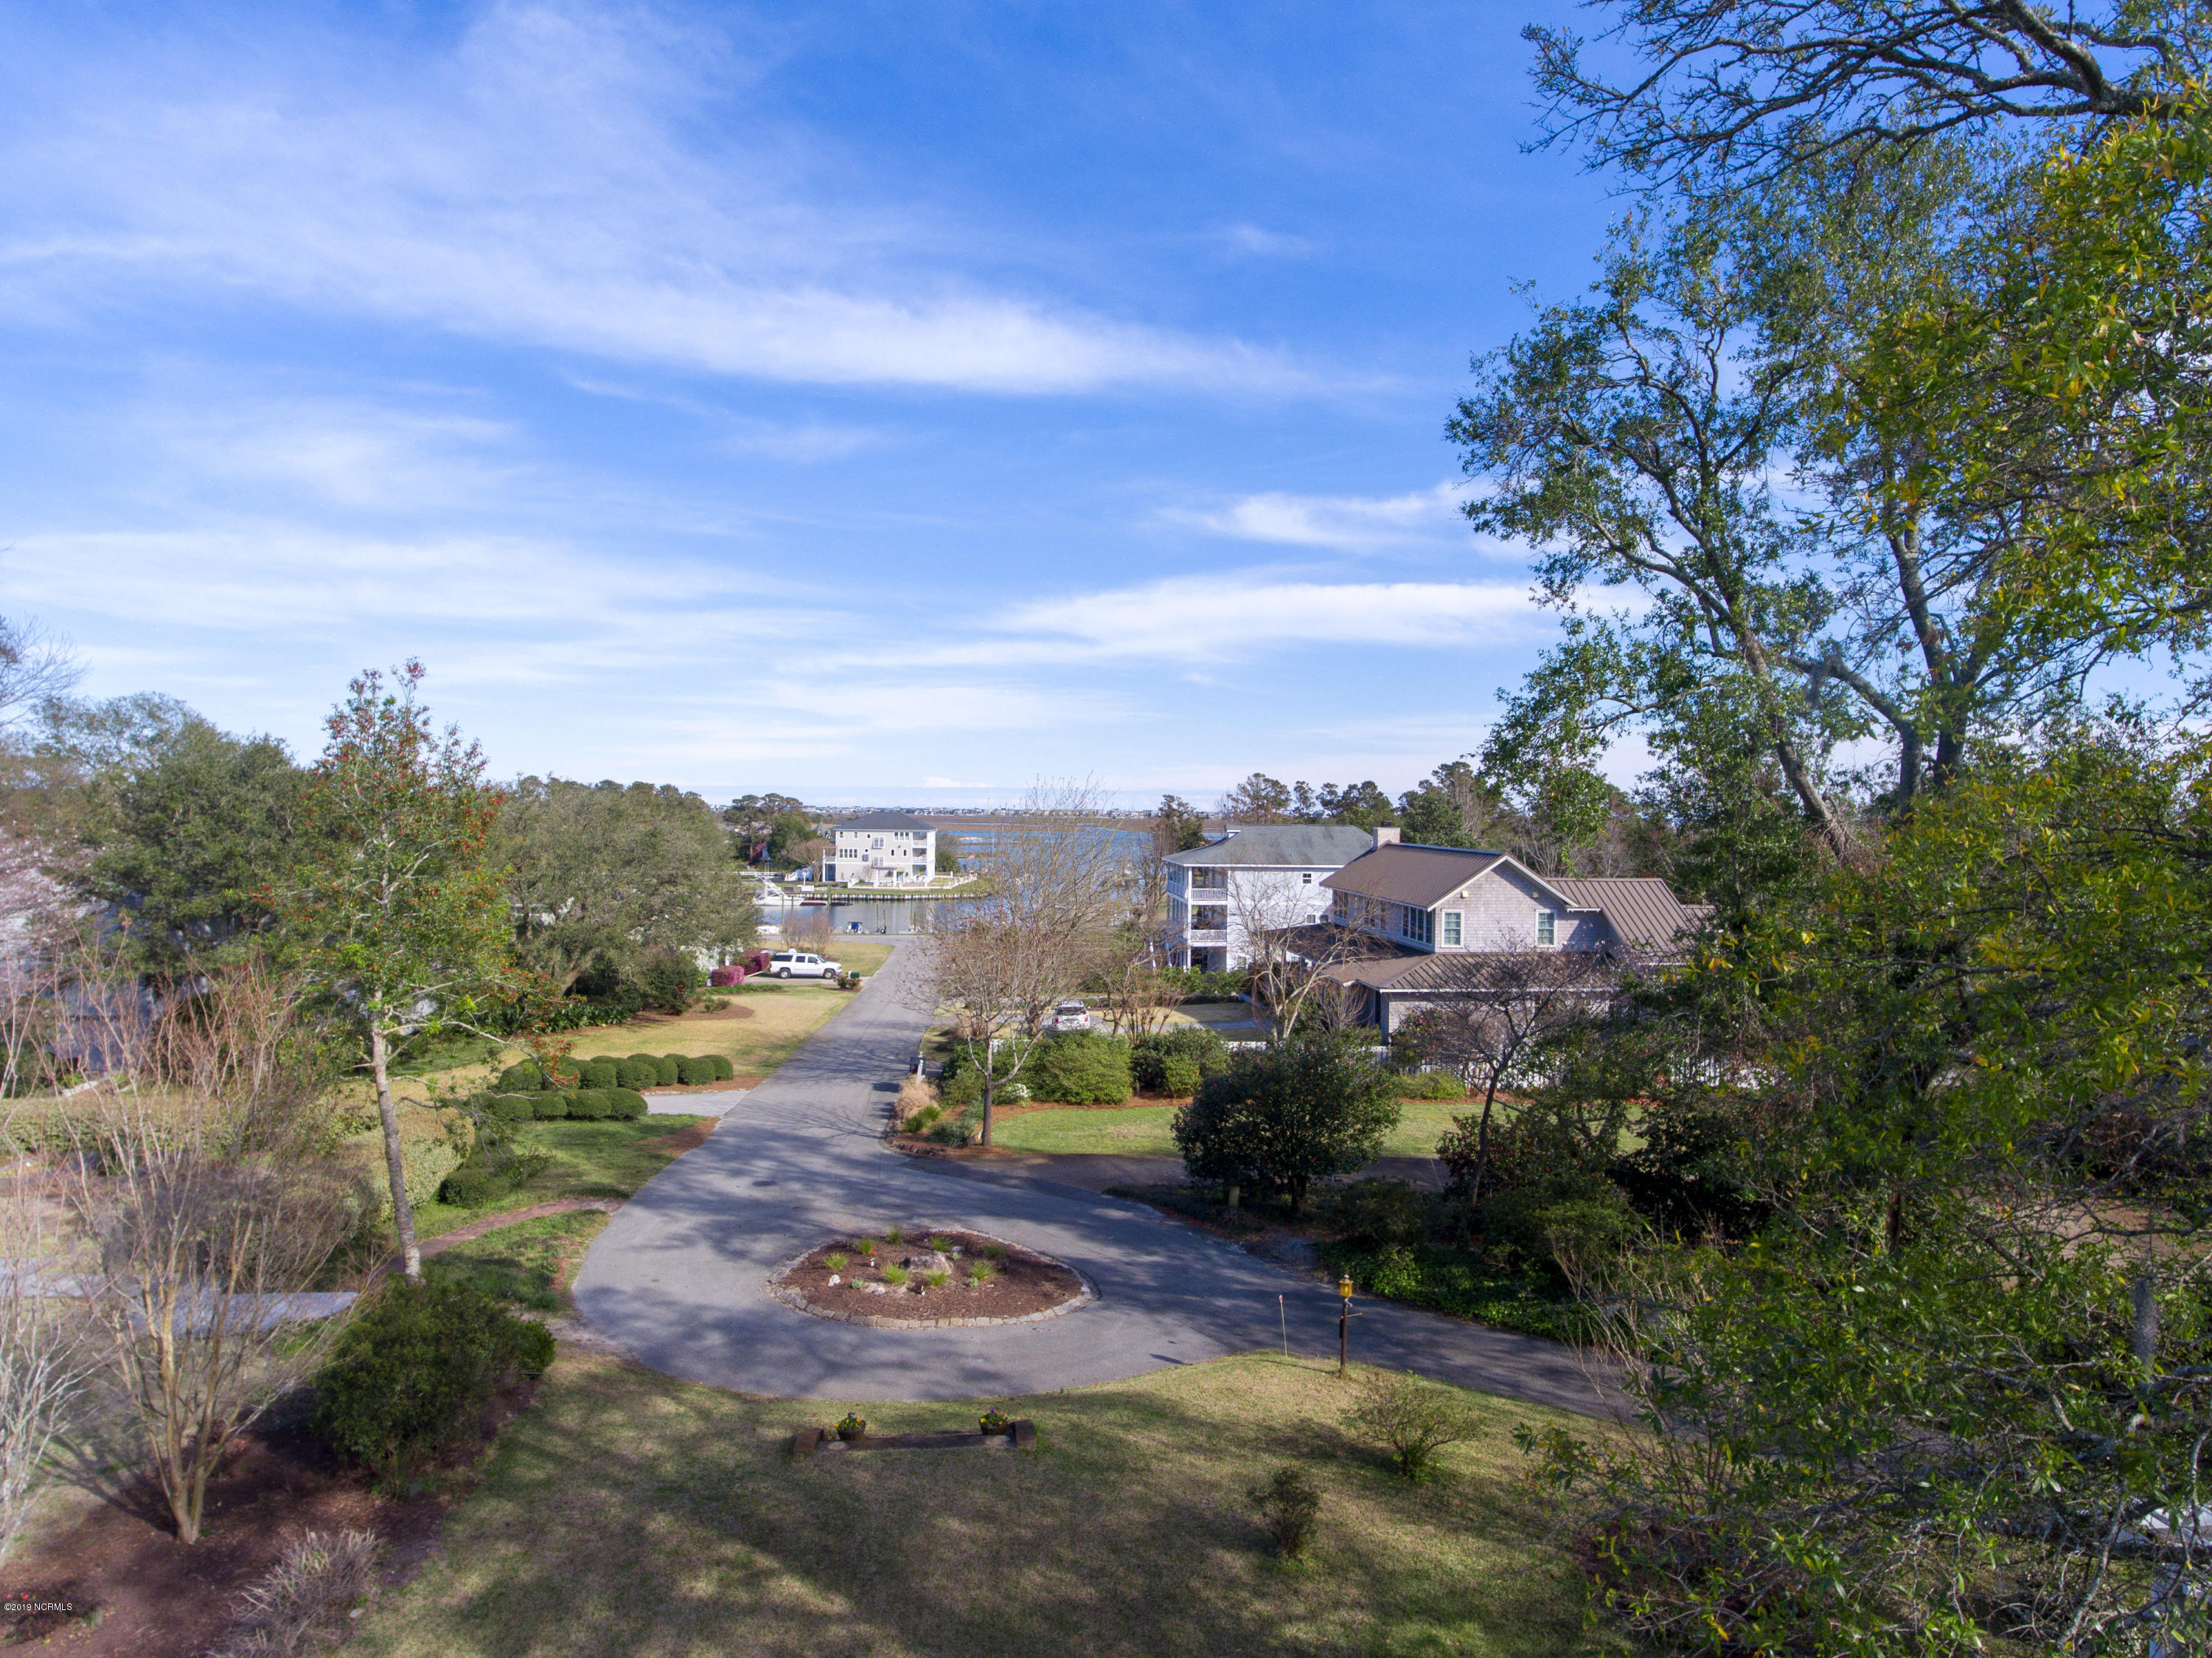 102 Martingale Lane, Wilmington, North Carolina, 4 Bedrooms Bedrooms, 9 Rooms Rooms,3 BathroomsBathrooms,Single family residence,For sale,Martingale,100163733